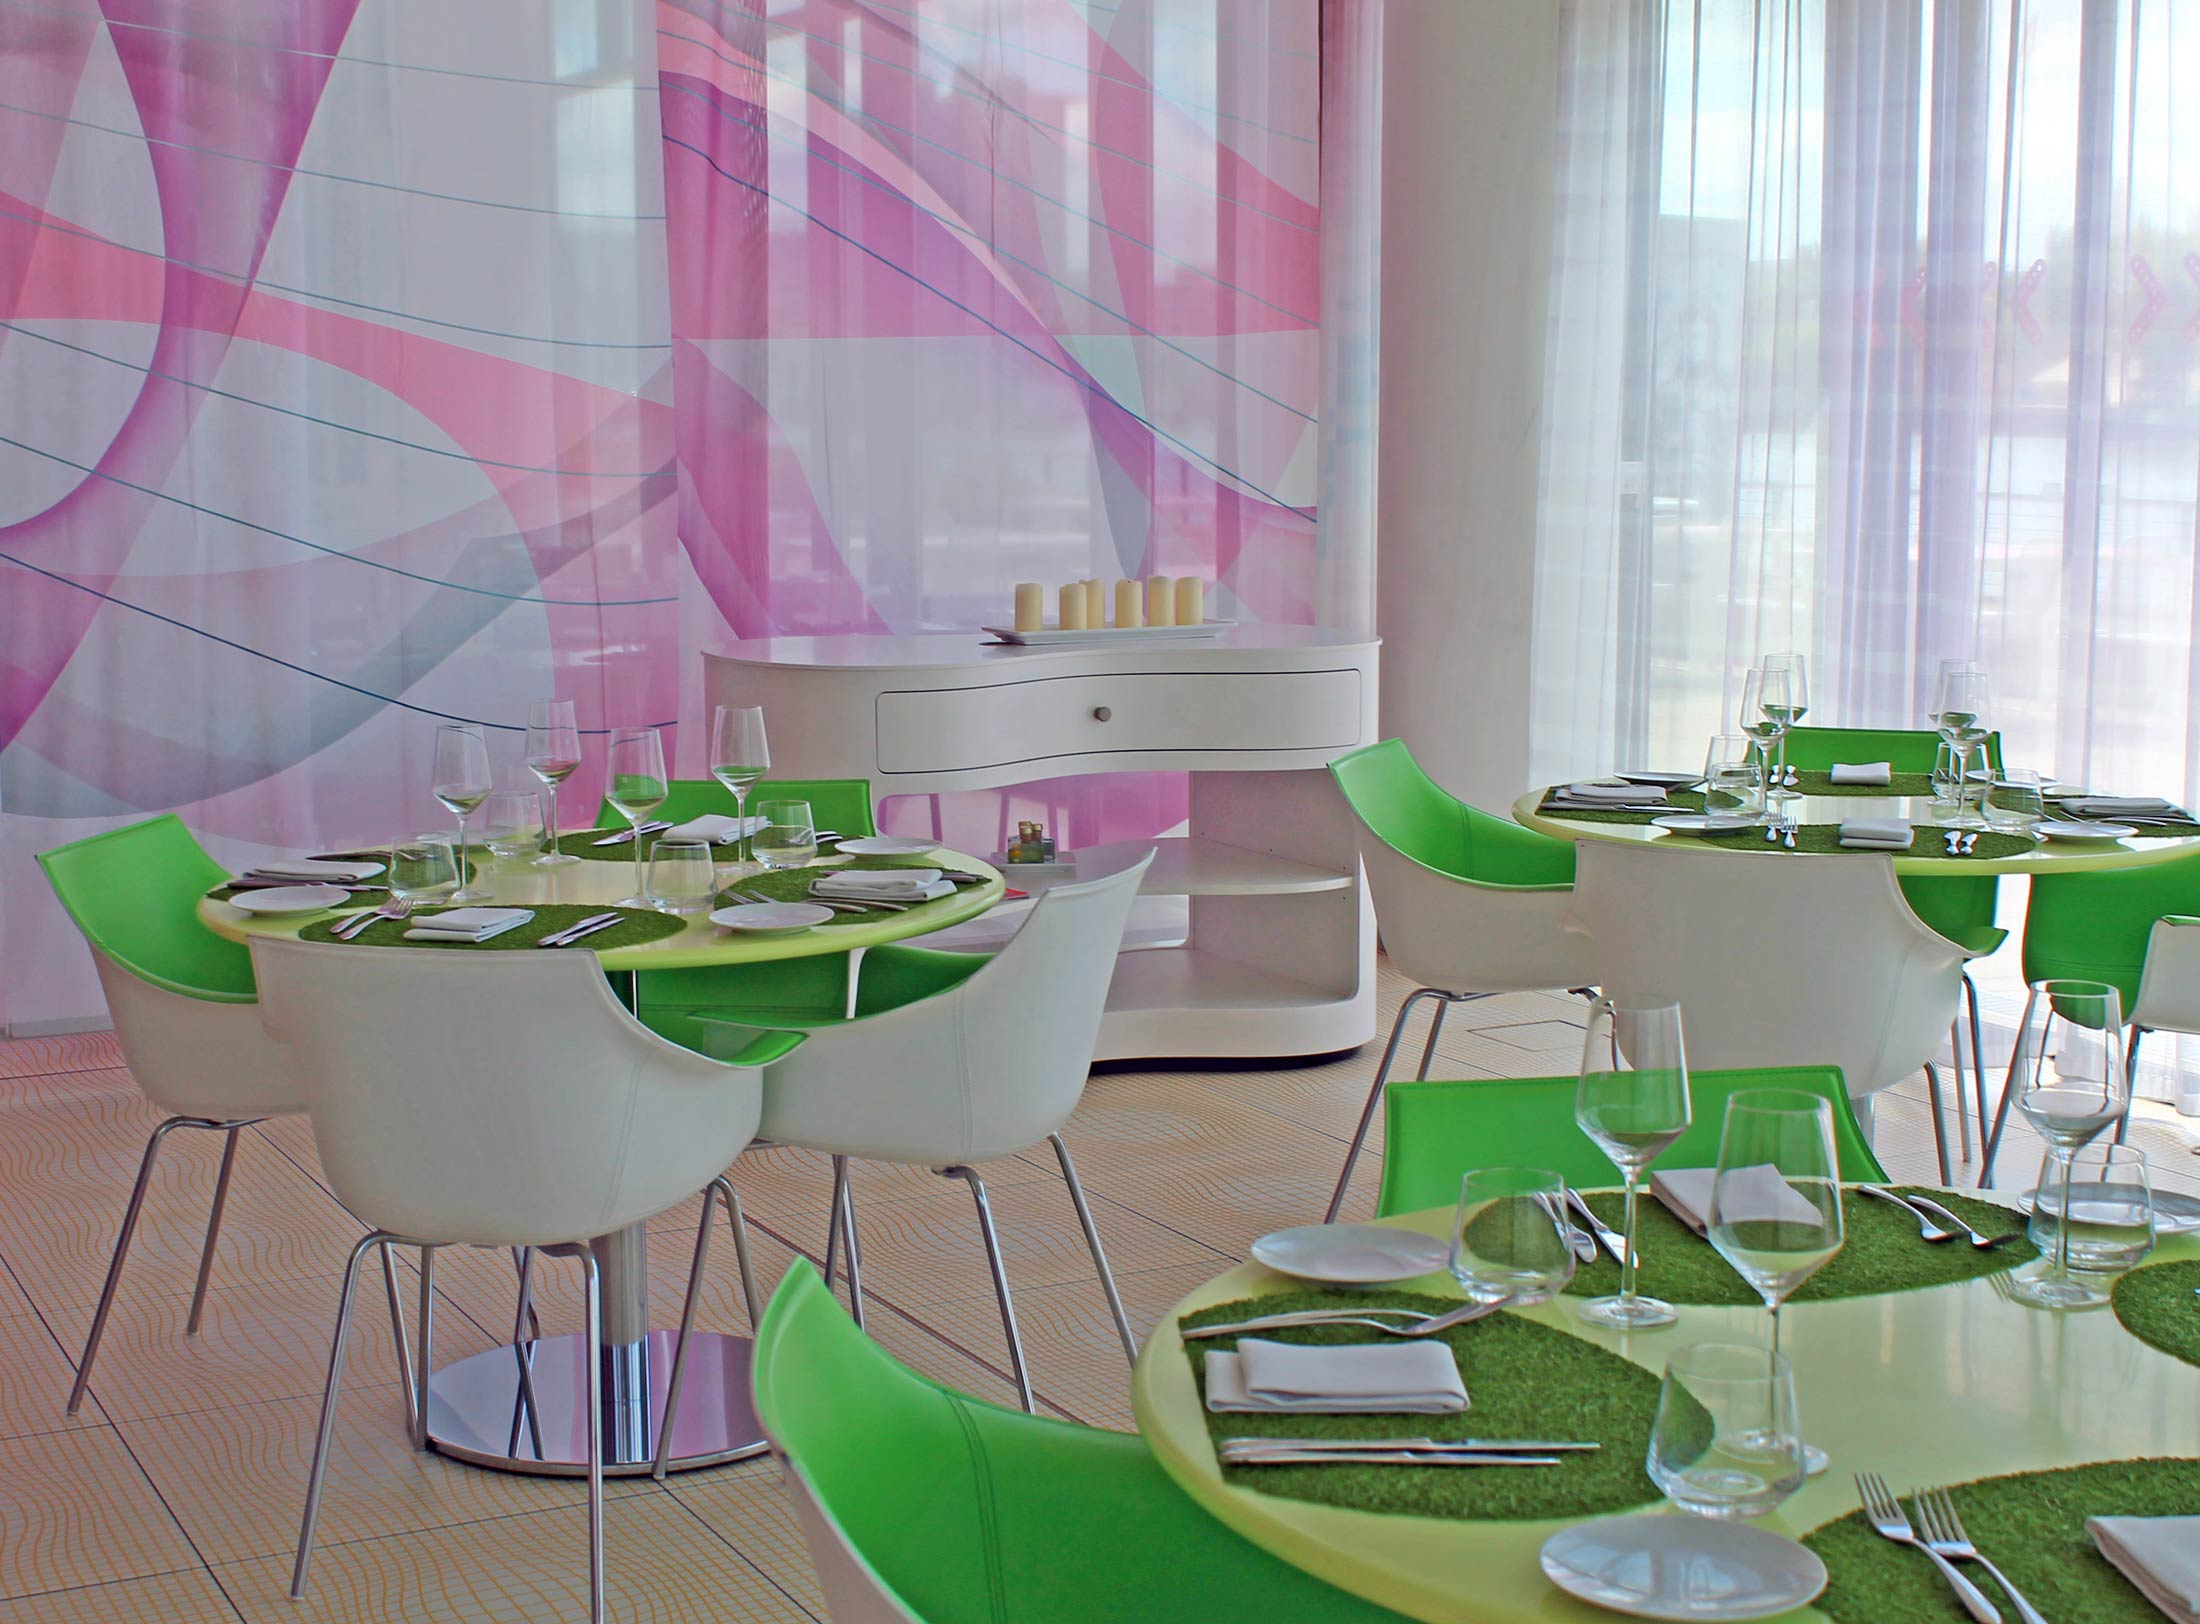 Fabrics Restaurant Berlin - Focal Journey (by Gustavo Espinola)